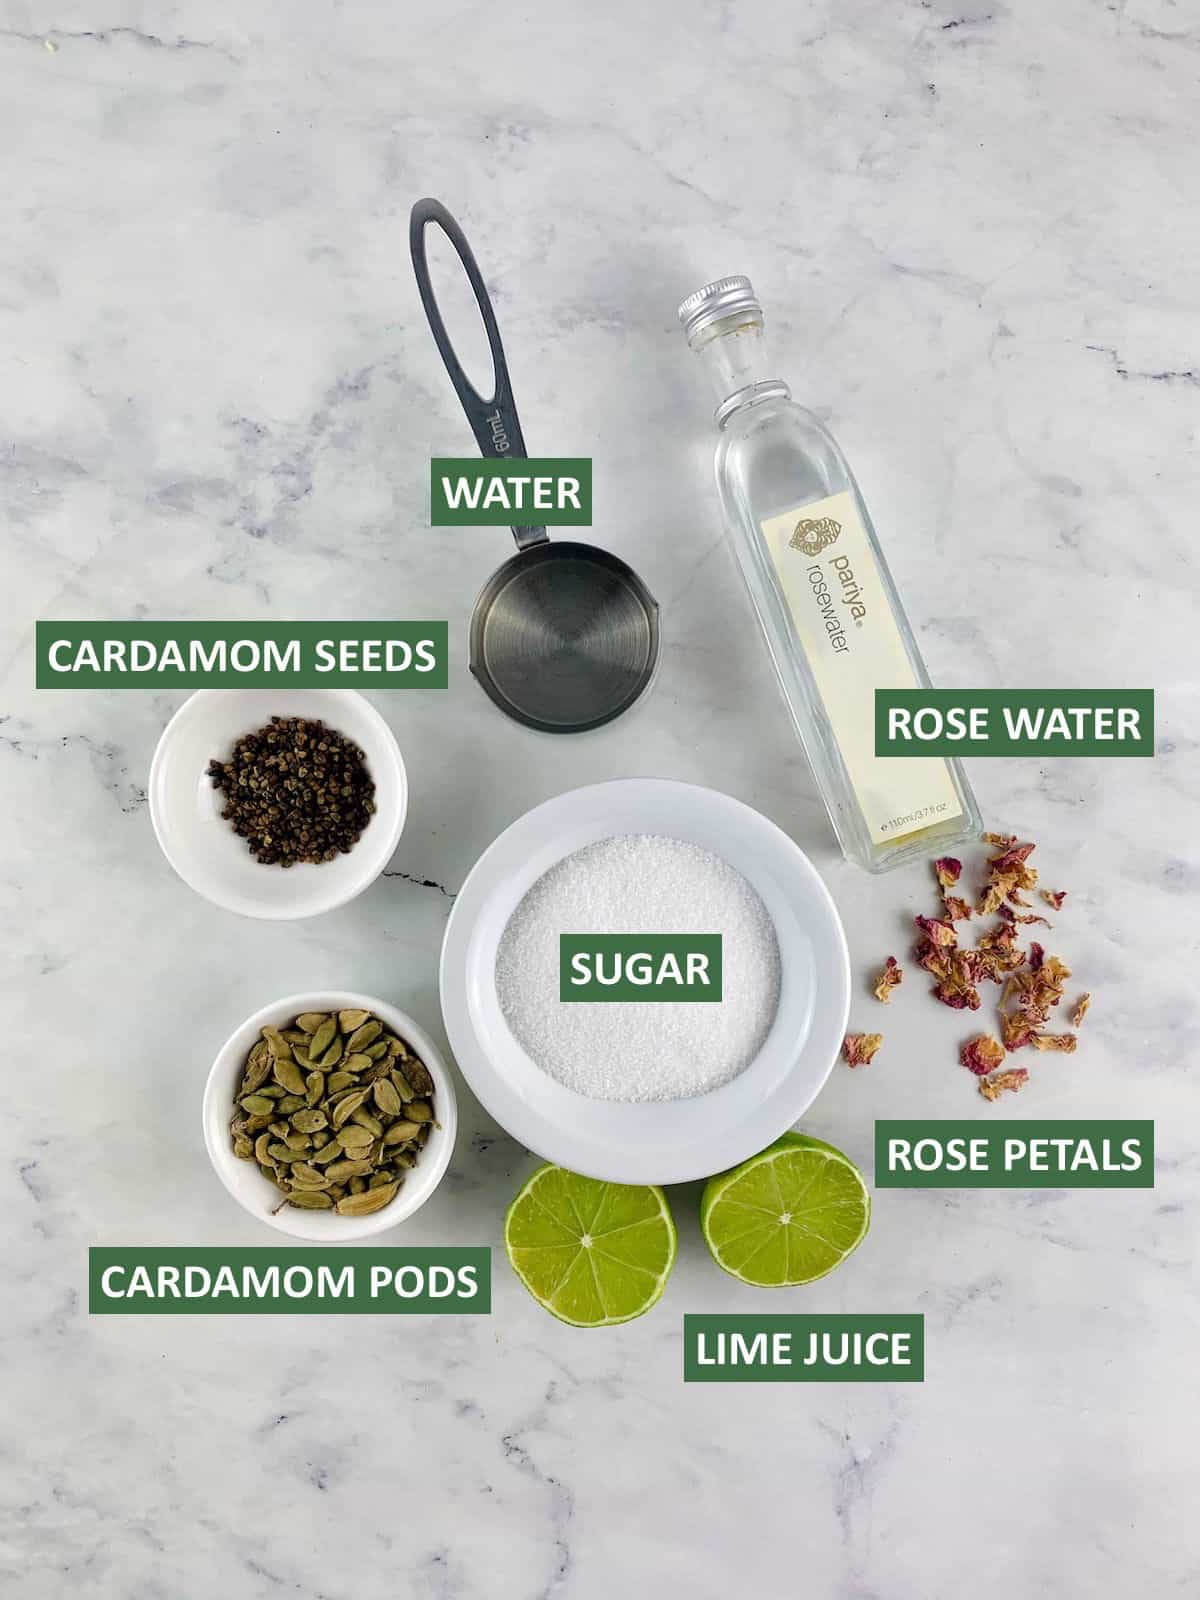 LABELLED INGREDIENTS NEEDED TO MAKE CARDAMOM SYRUP